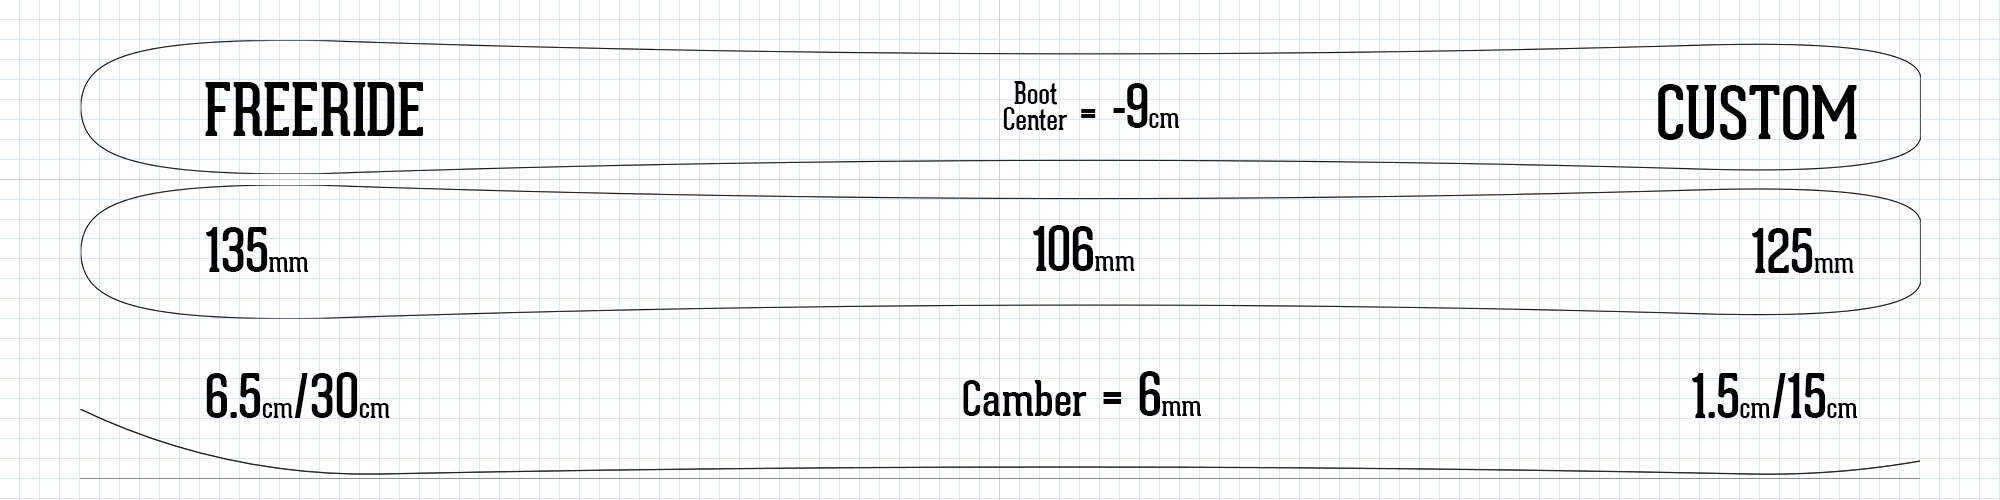 freeride-ski-information spec sheet rocker camber tip tail height weight